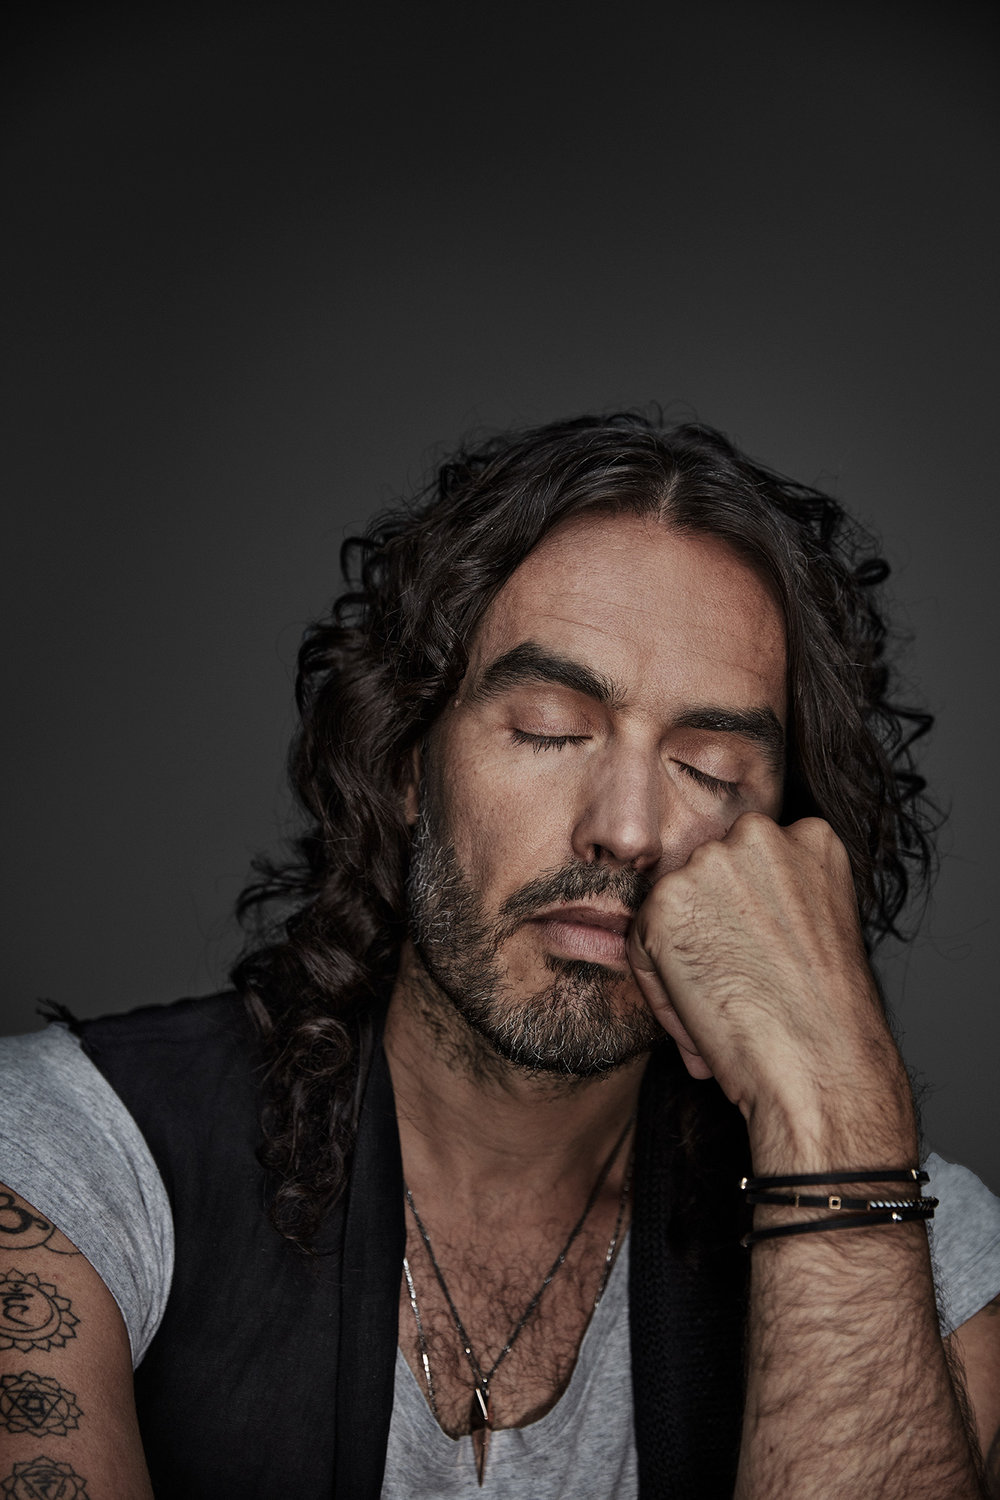 Russell Brand photographed by portrait photographer Chris Floyd represented by photographic agency Flock.jpeg